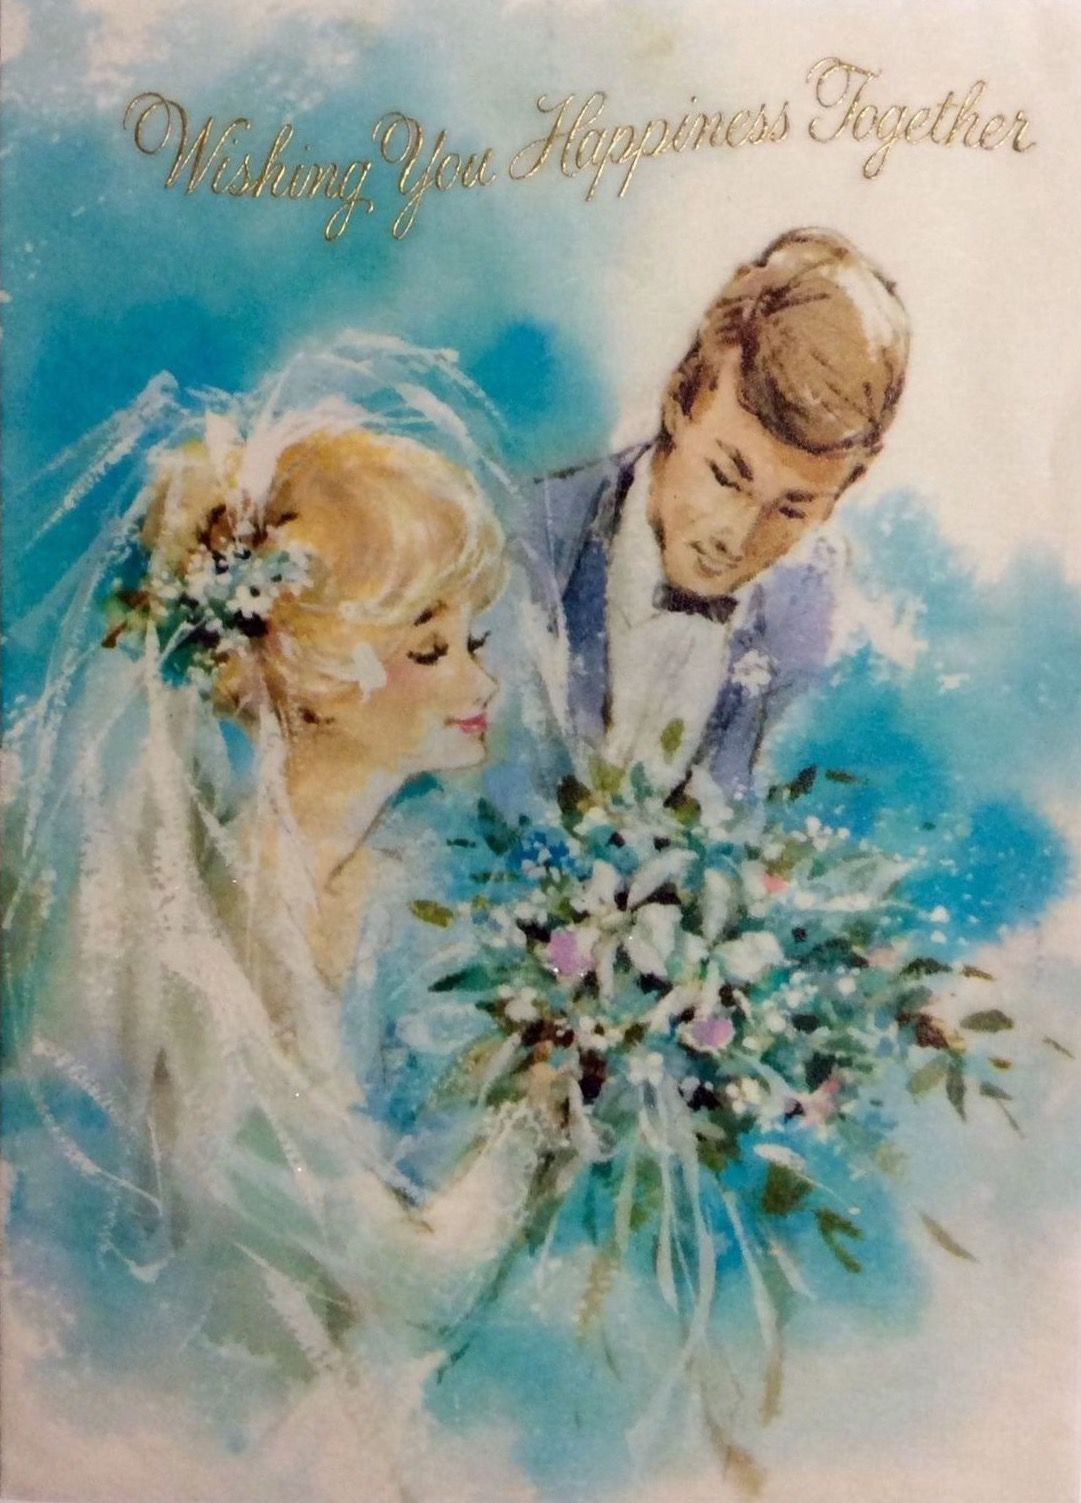 Pin By Daniele On Vintage Wedding Wishes 1 Pinterest Vintage